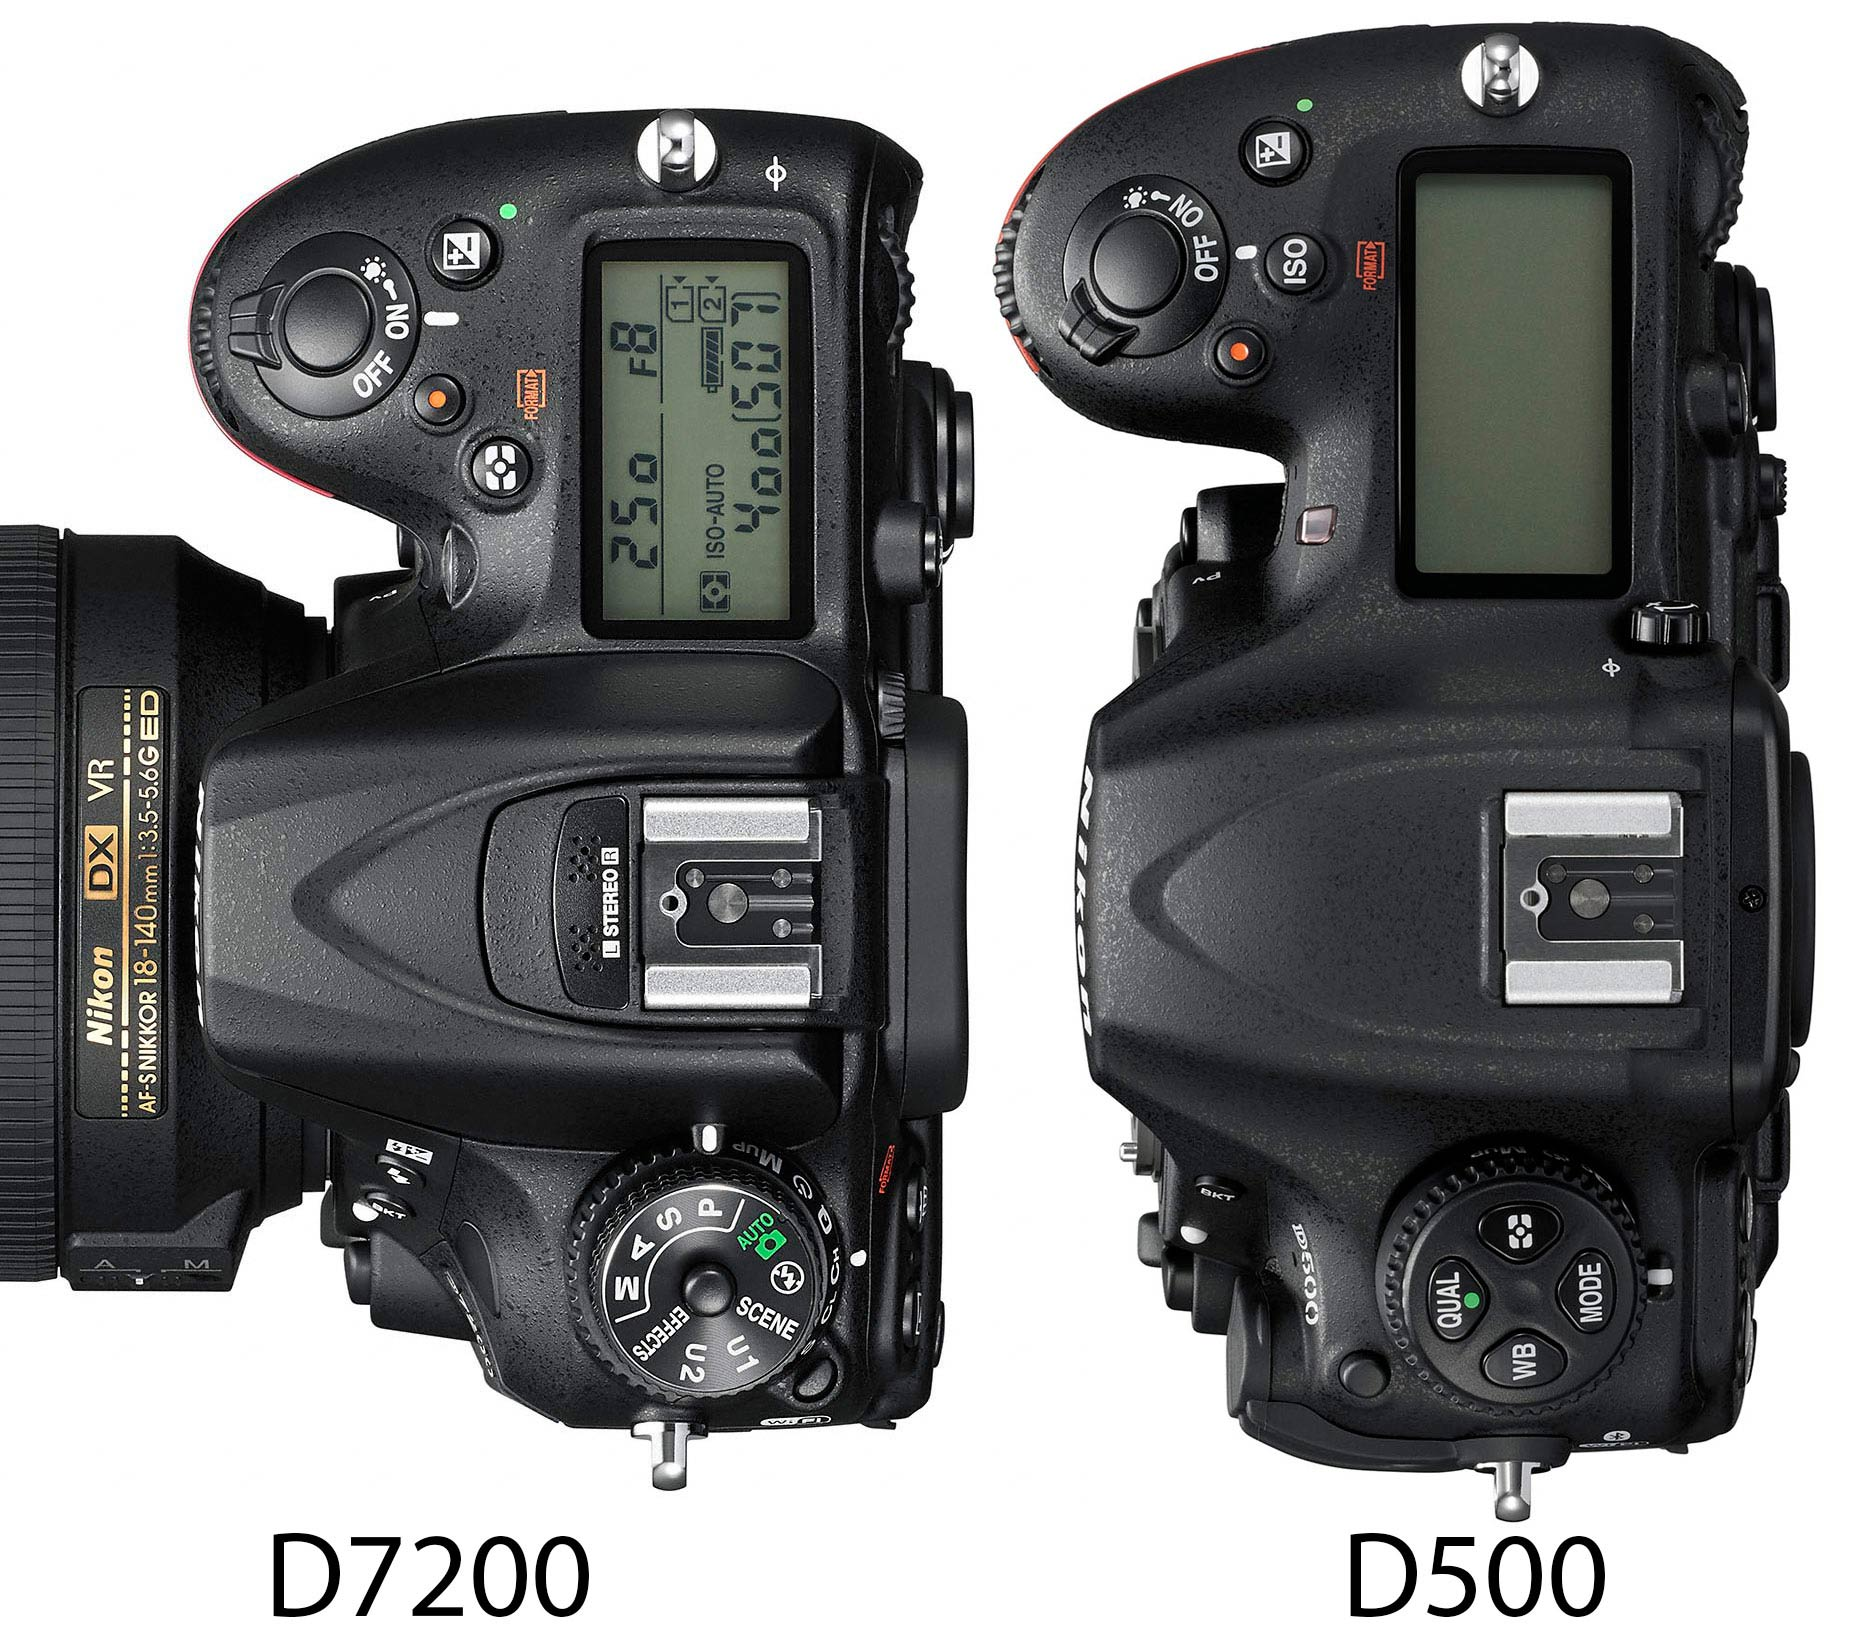 best commercial camera with Nikon D7200 Vs D500 Which Should You Buy on Savannah Guthrie Facetimes Baby Daily Today Set Article 1 moreover Sunsilk Black Shine Print Ad February 2014 likewise Cimg0855 moreover Shabana Azmi Top Five Films 17111 besides Nikon D7200 Vs D500 Which Should You Buy.